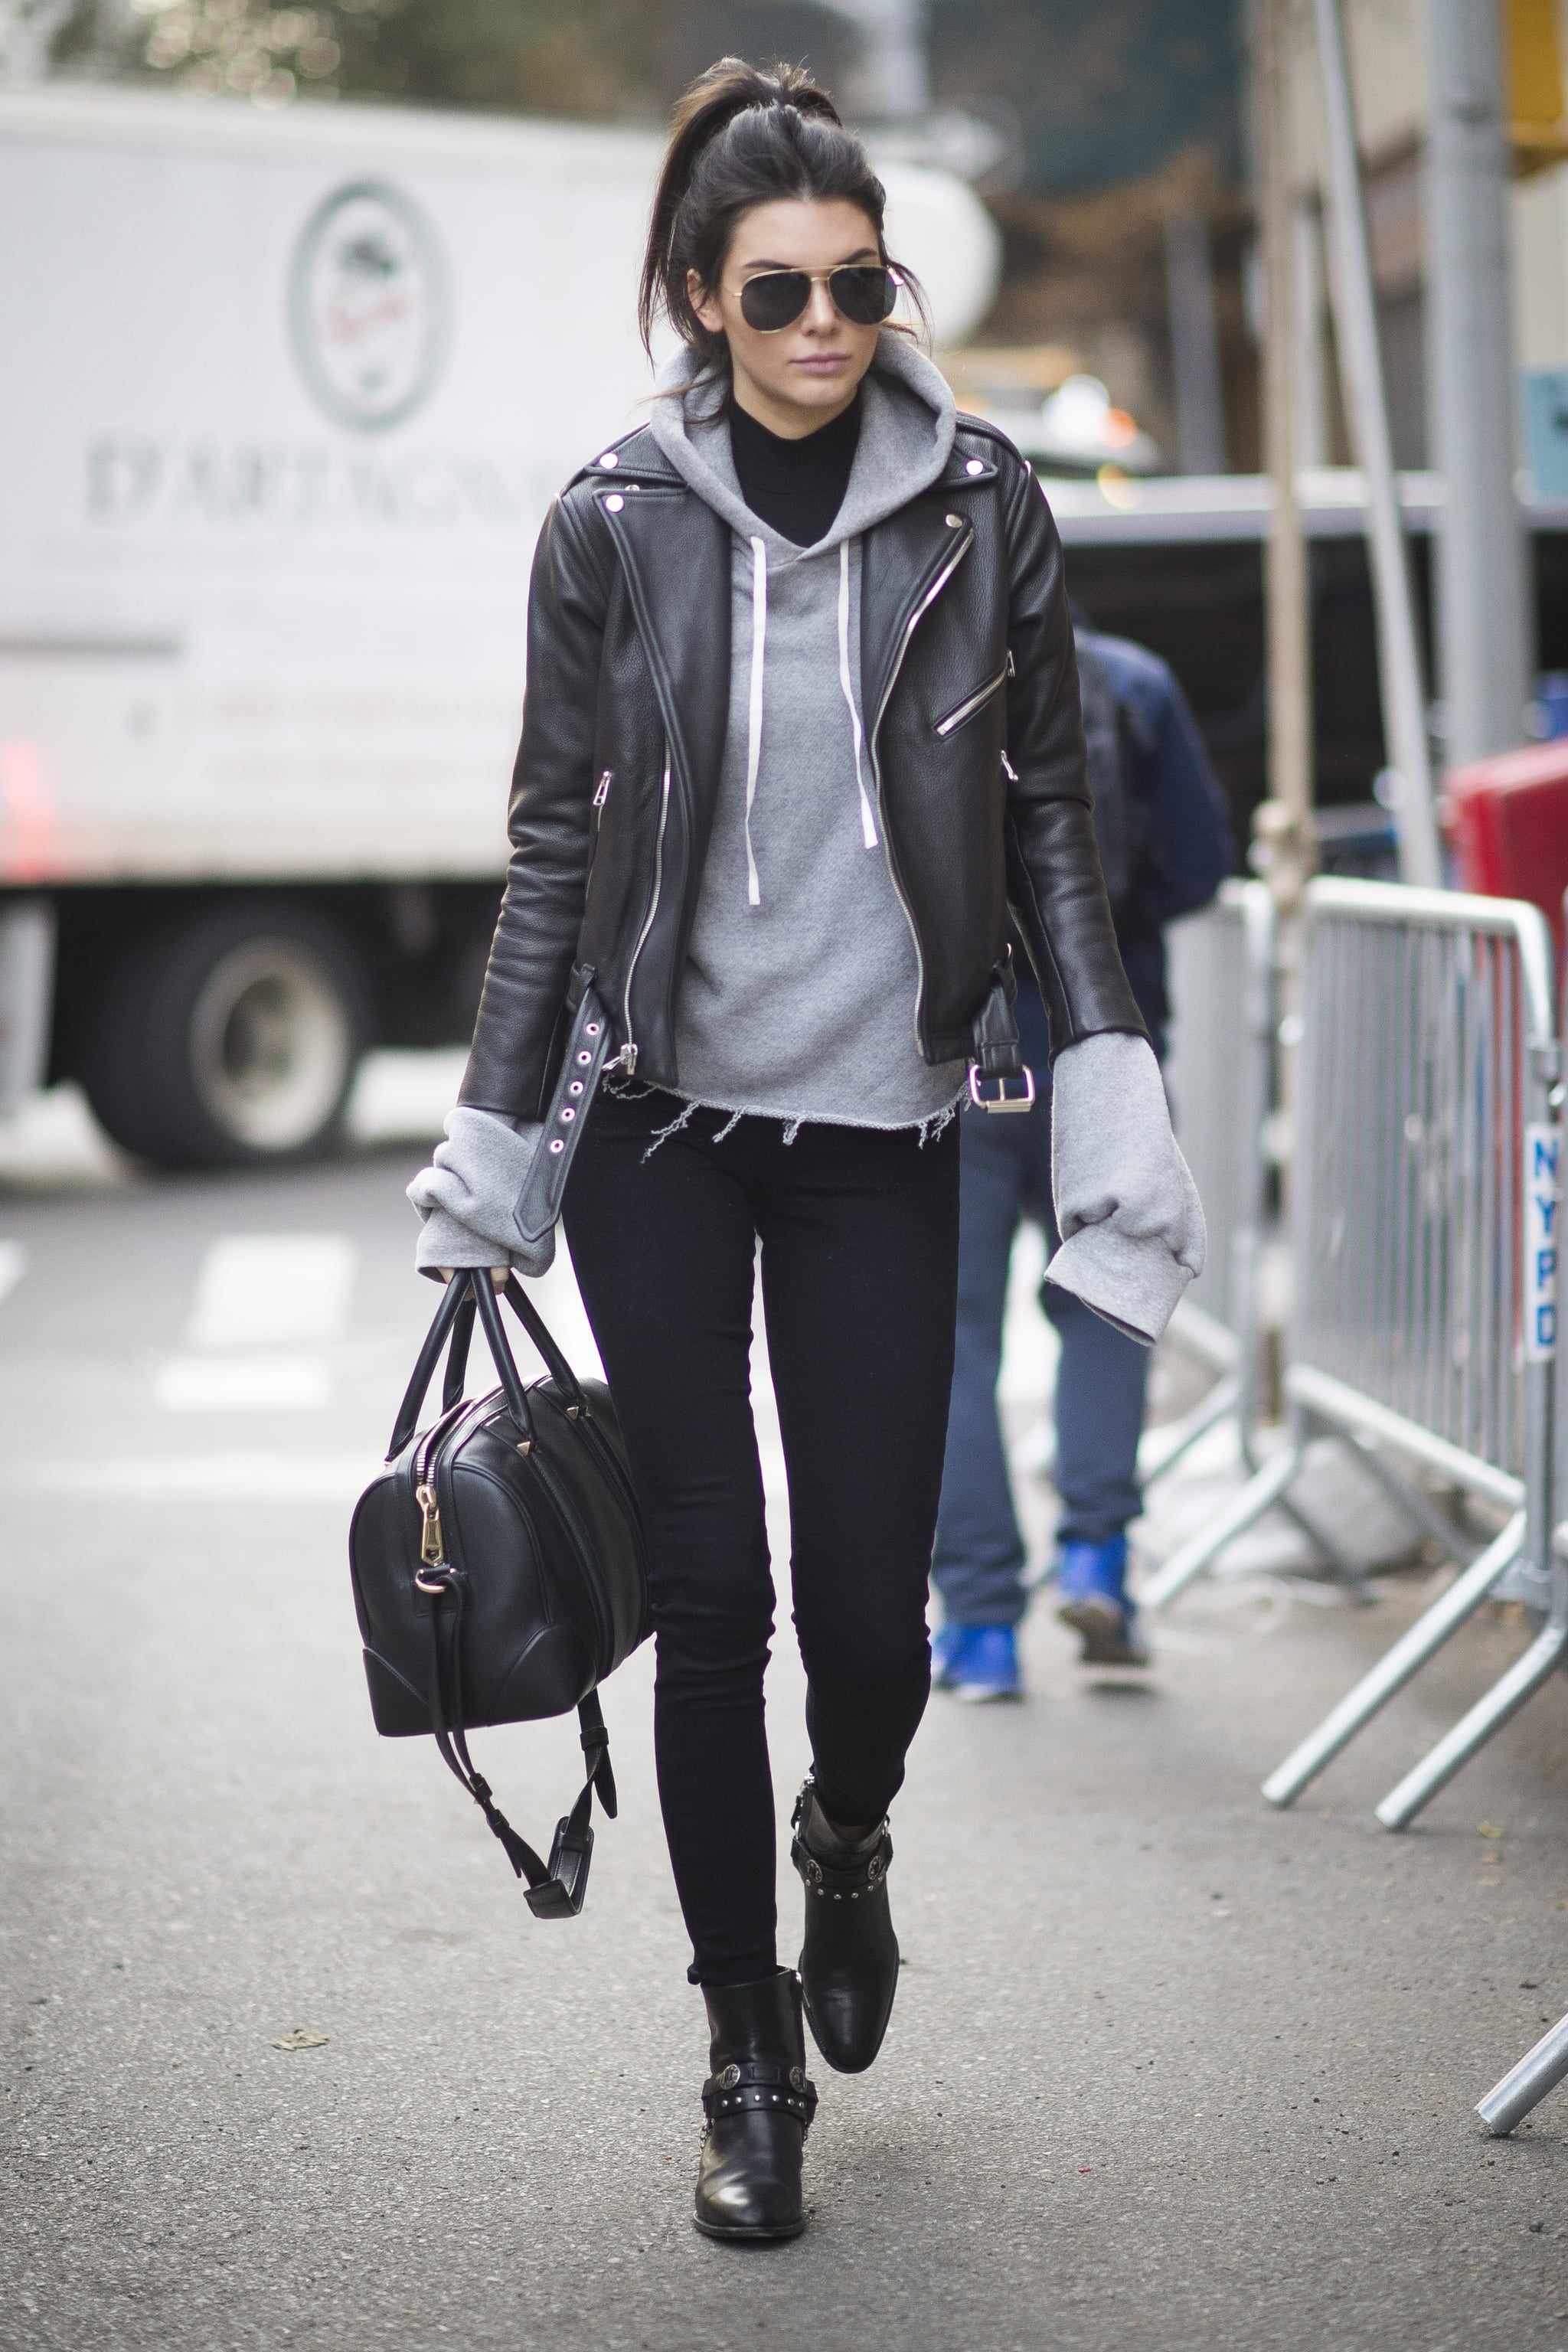 Kendall Jenner Arrived At The Show In An Edgy Yet Casual Street Style These Vs Model Off Duty